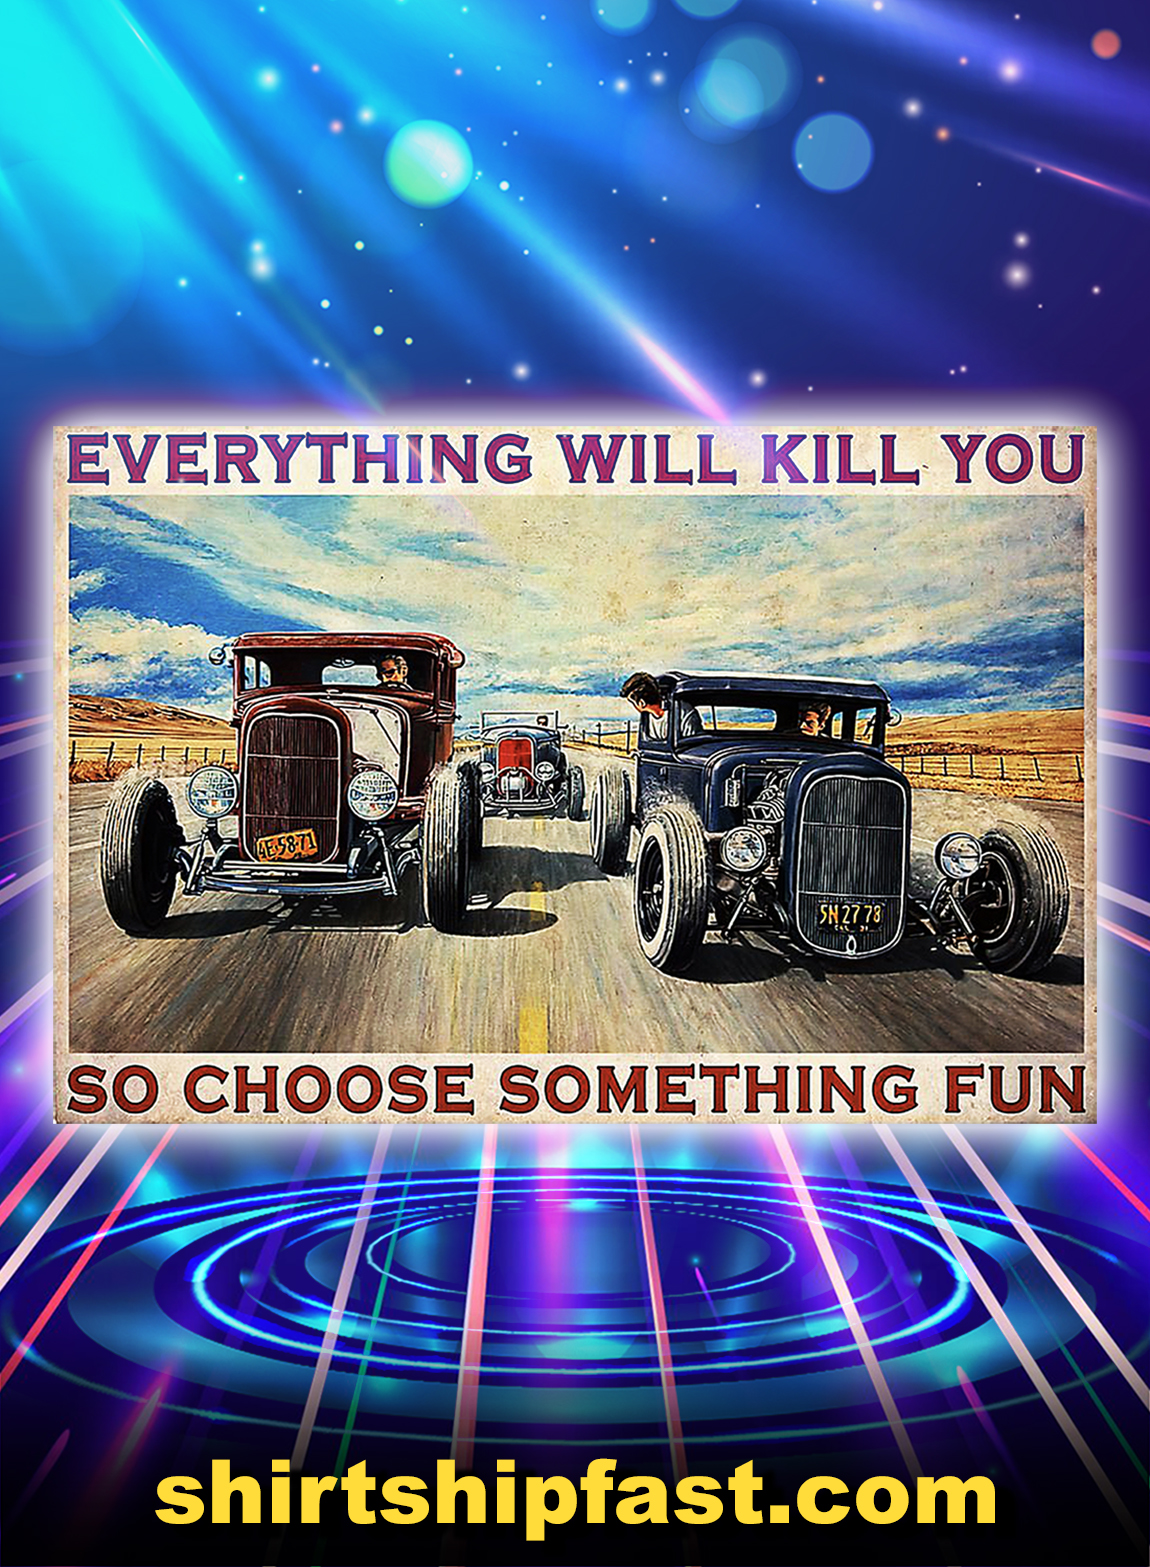 Hot rod racing everything will kill you so choose something fun poster - A3